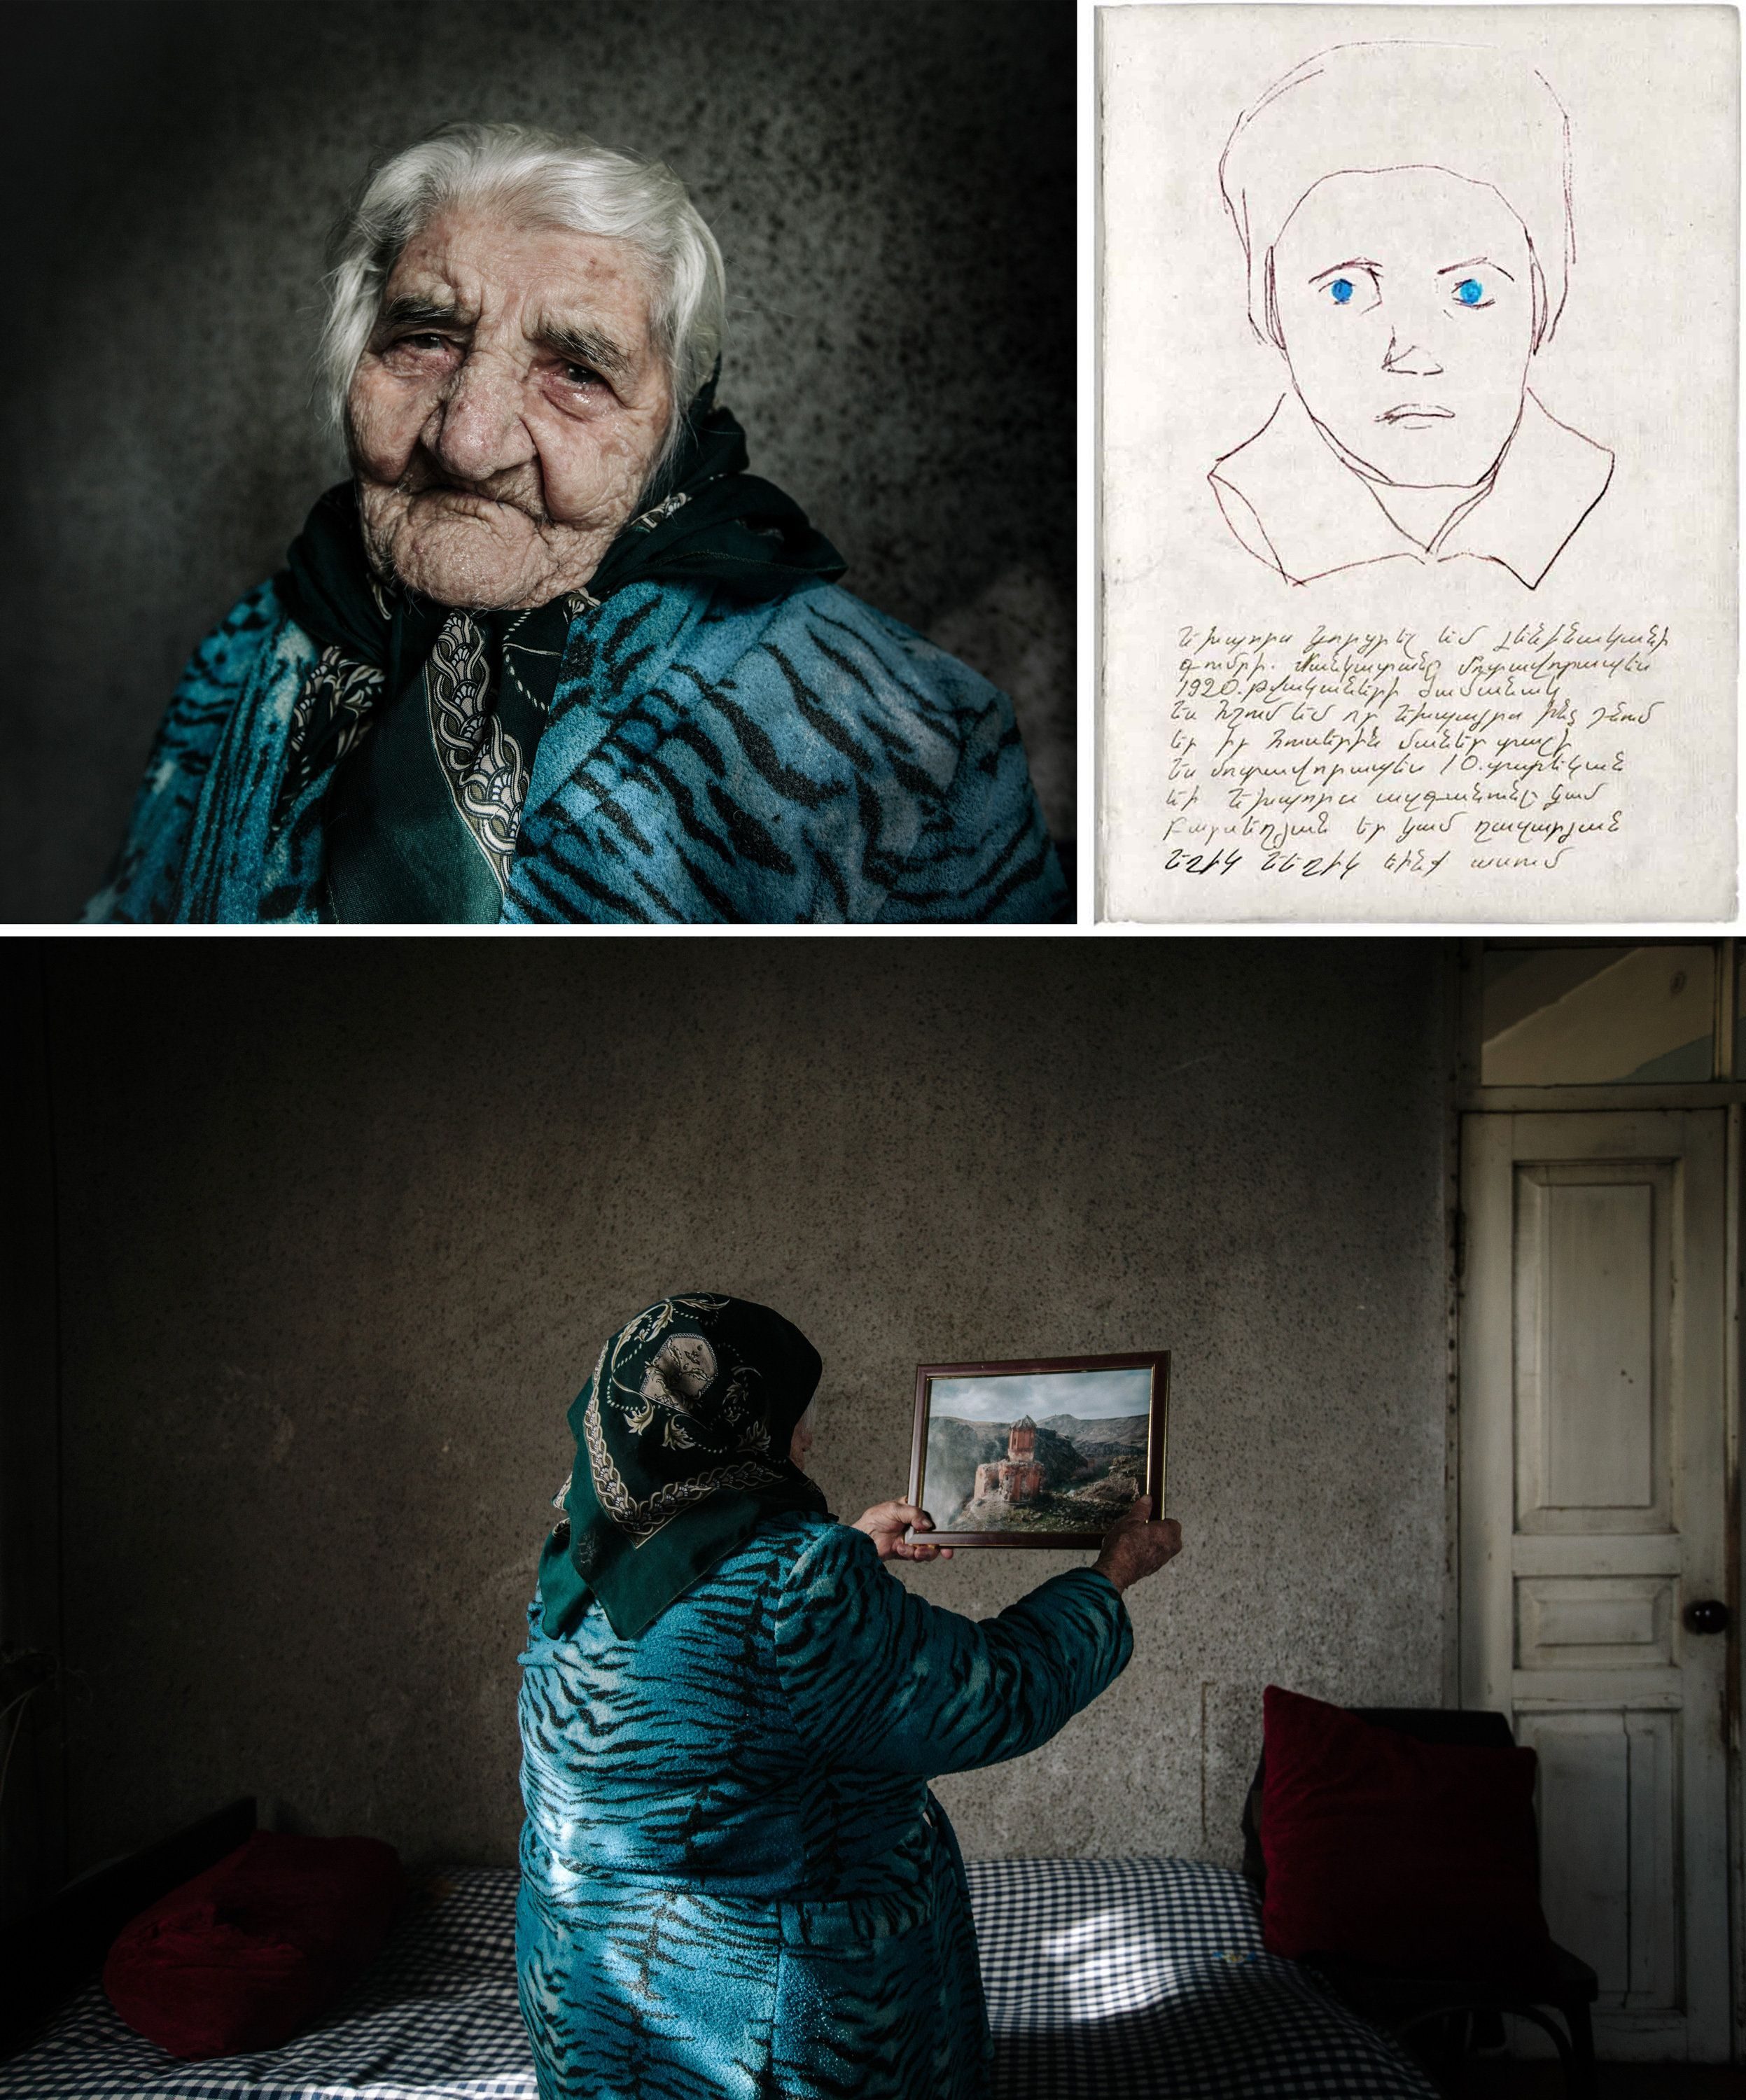 """Yepraksia Gevorgyan holds an image of the location where she recalls escaping with her family. She was separated from her brother. """"His name is Yeghia Ghazarian,"""" she says. """"I was 10 when I last saw him. He liked to put me on his shoulders and play with me at the orphanage. I don't remember much else about him except he has blue eyes, like mine."""" Her grandson drew the portrait sketch (top right)."""